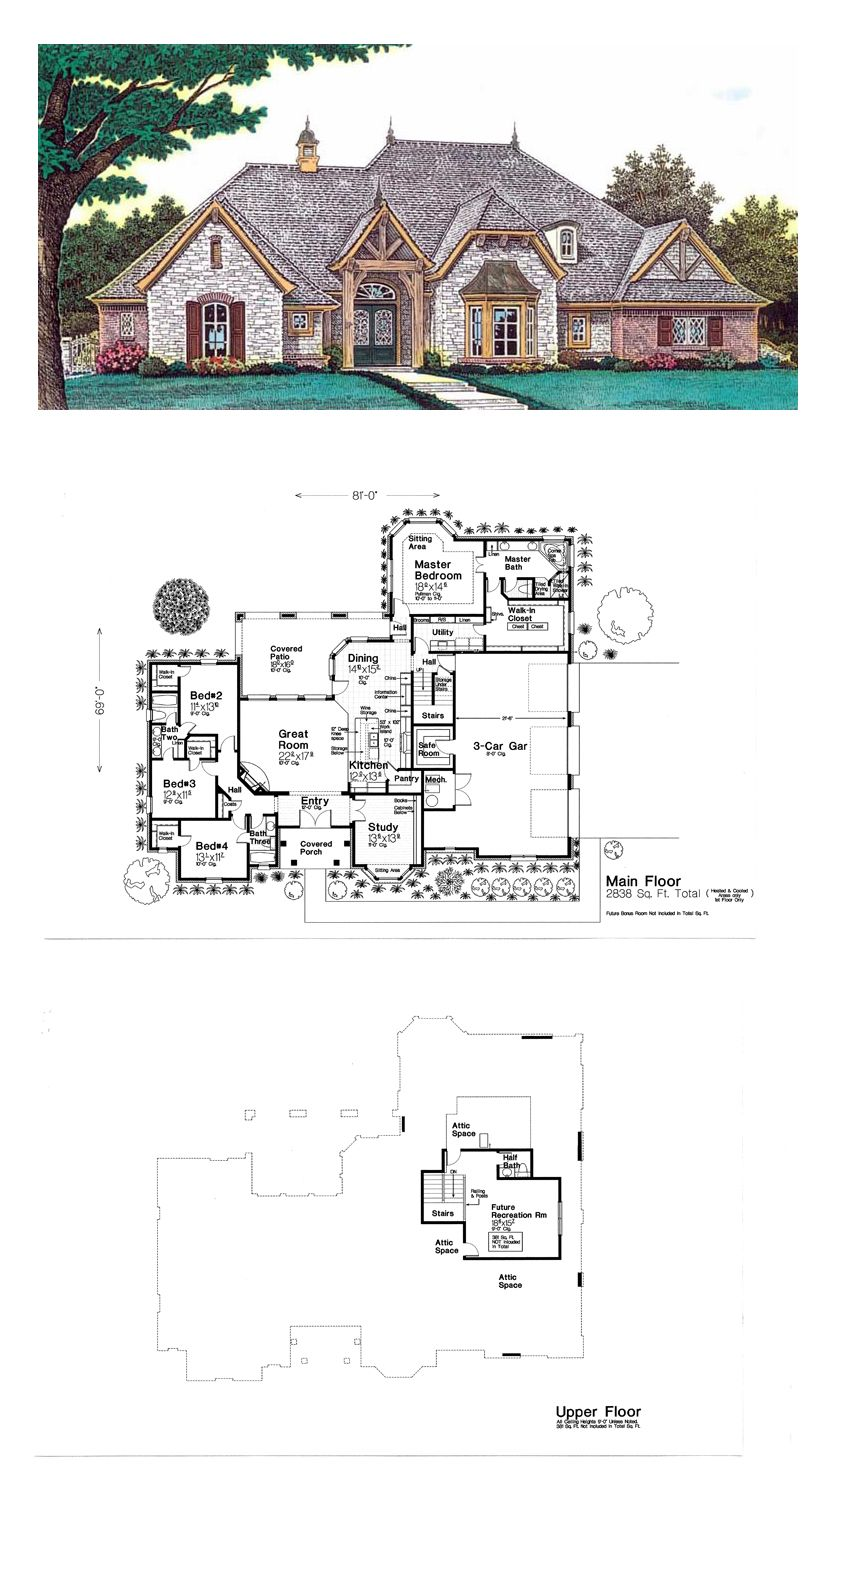 European house plan 92233 total living area 2838 sq ft for Piani di casa ranch 24x36